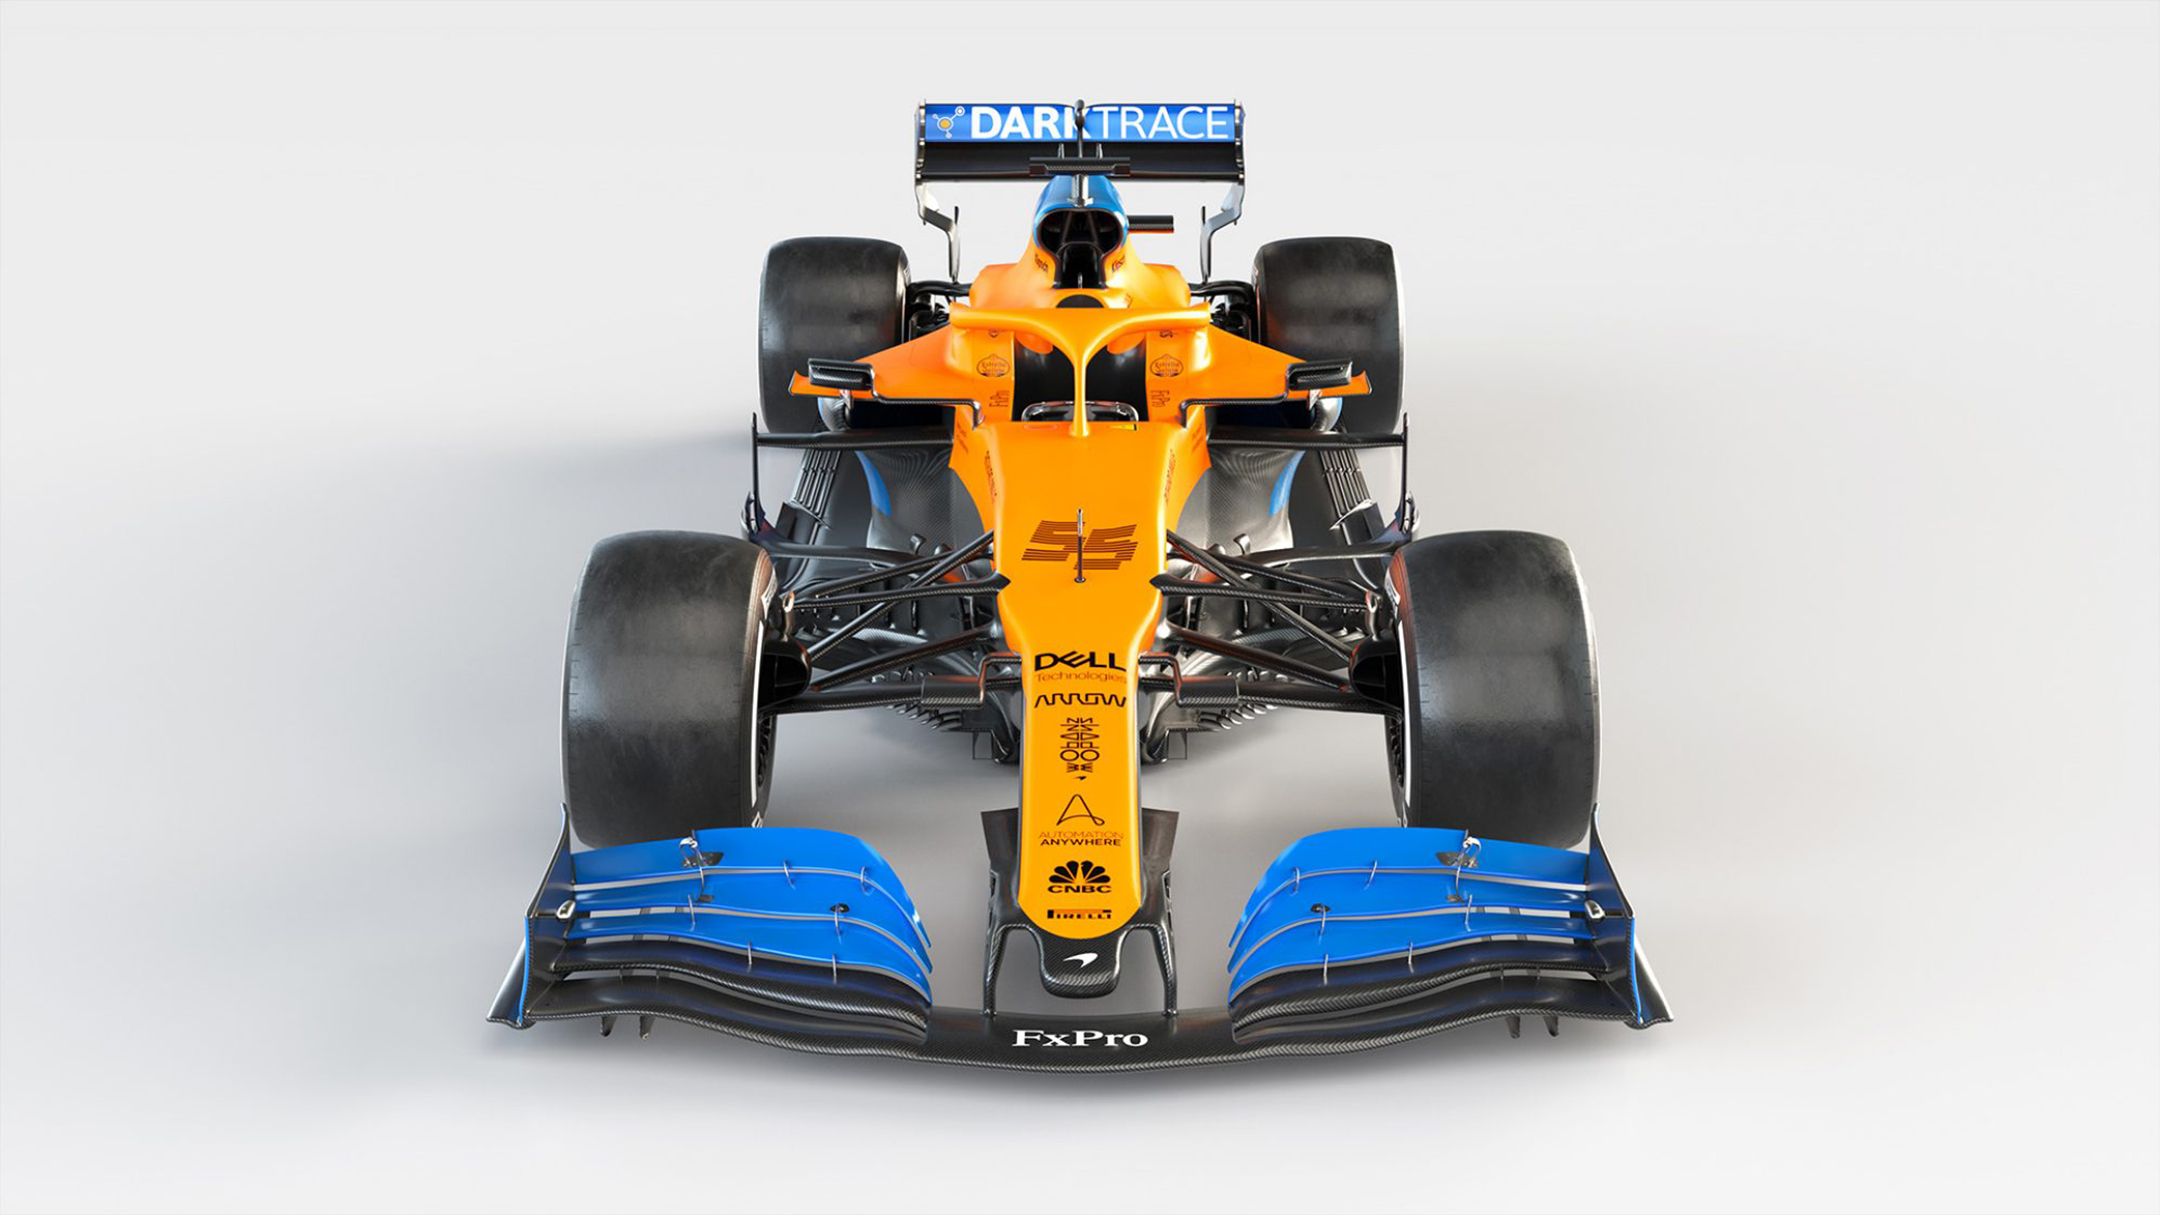 F1 - McLaren Racing - MCL35 - 2020 - top front-face - Renault E-Tech 20 - 35A engine - McLaren Applied Technologies